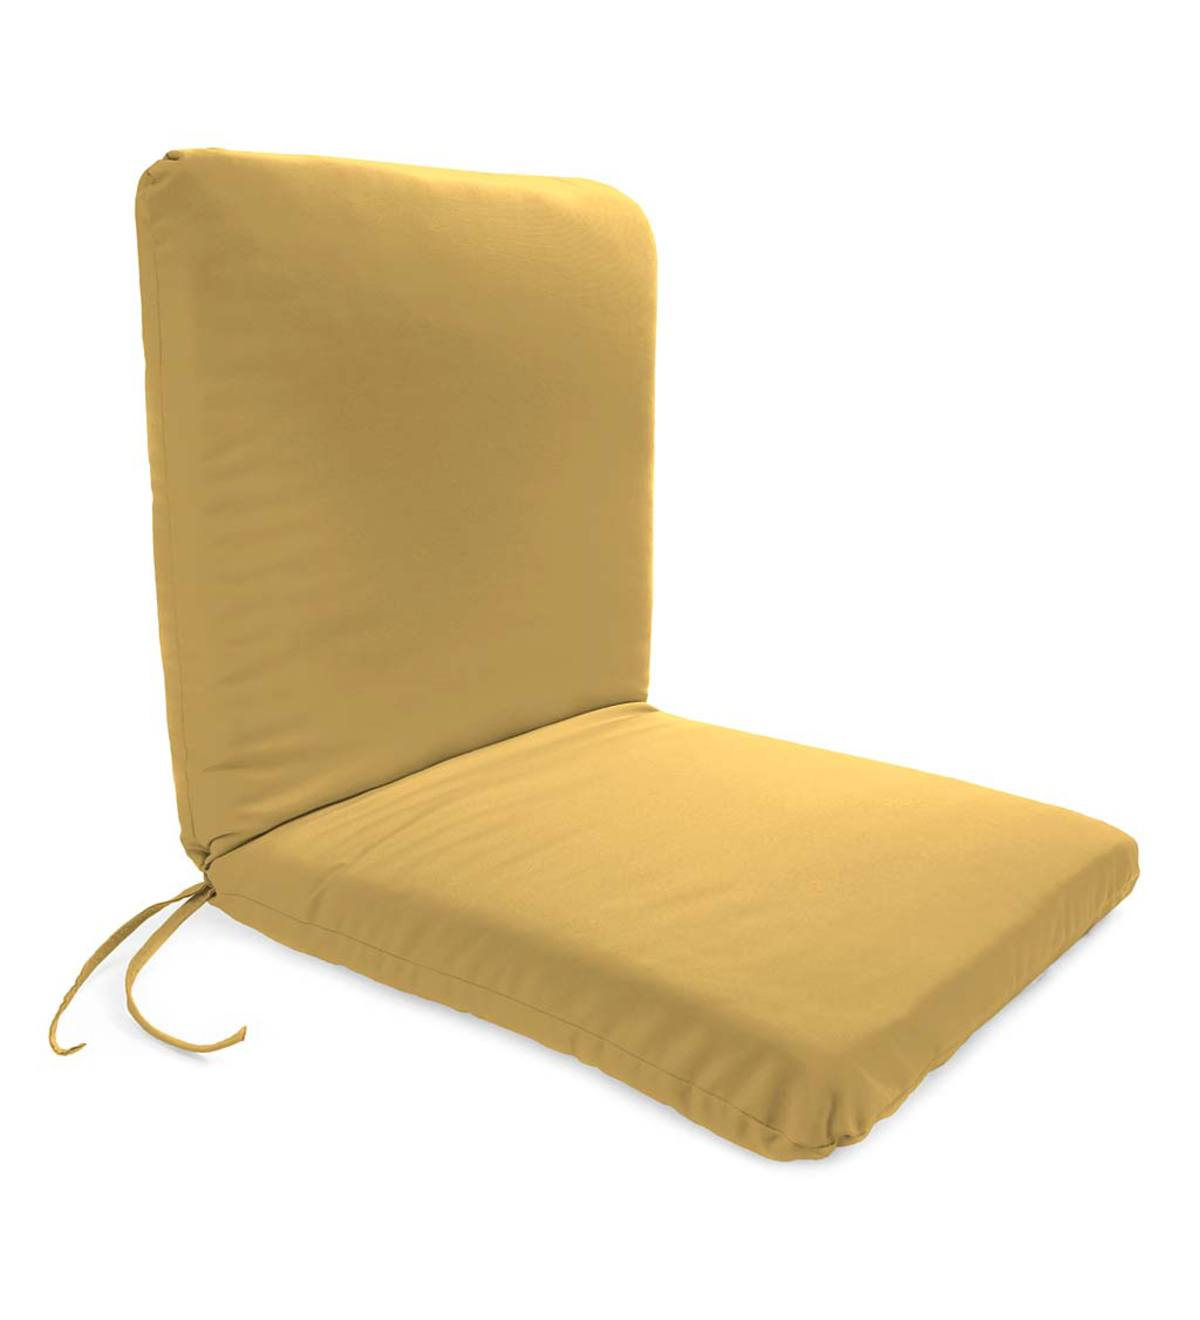 "Polyester Classic Chair Cushion With Ties, Seat 19""x 17""x 2½""; Back 19""x 19""x 2½"" - Khaki"